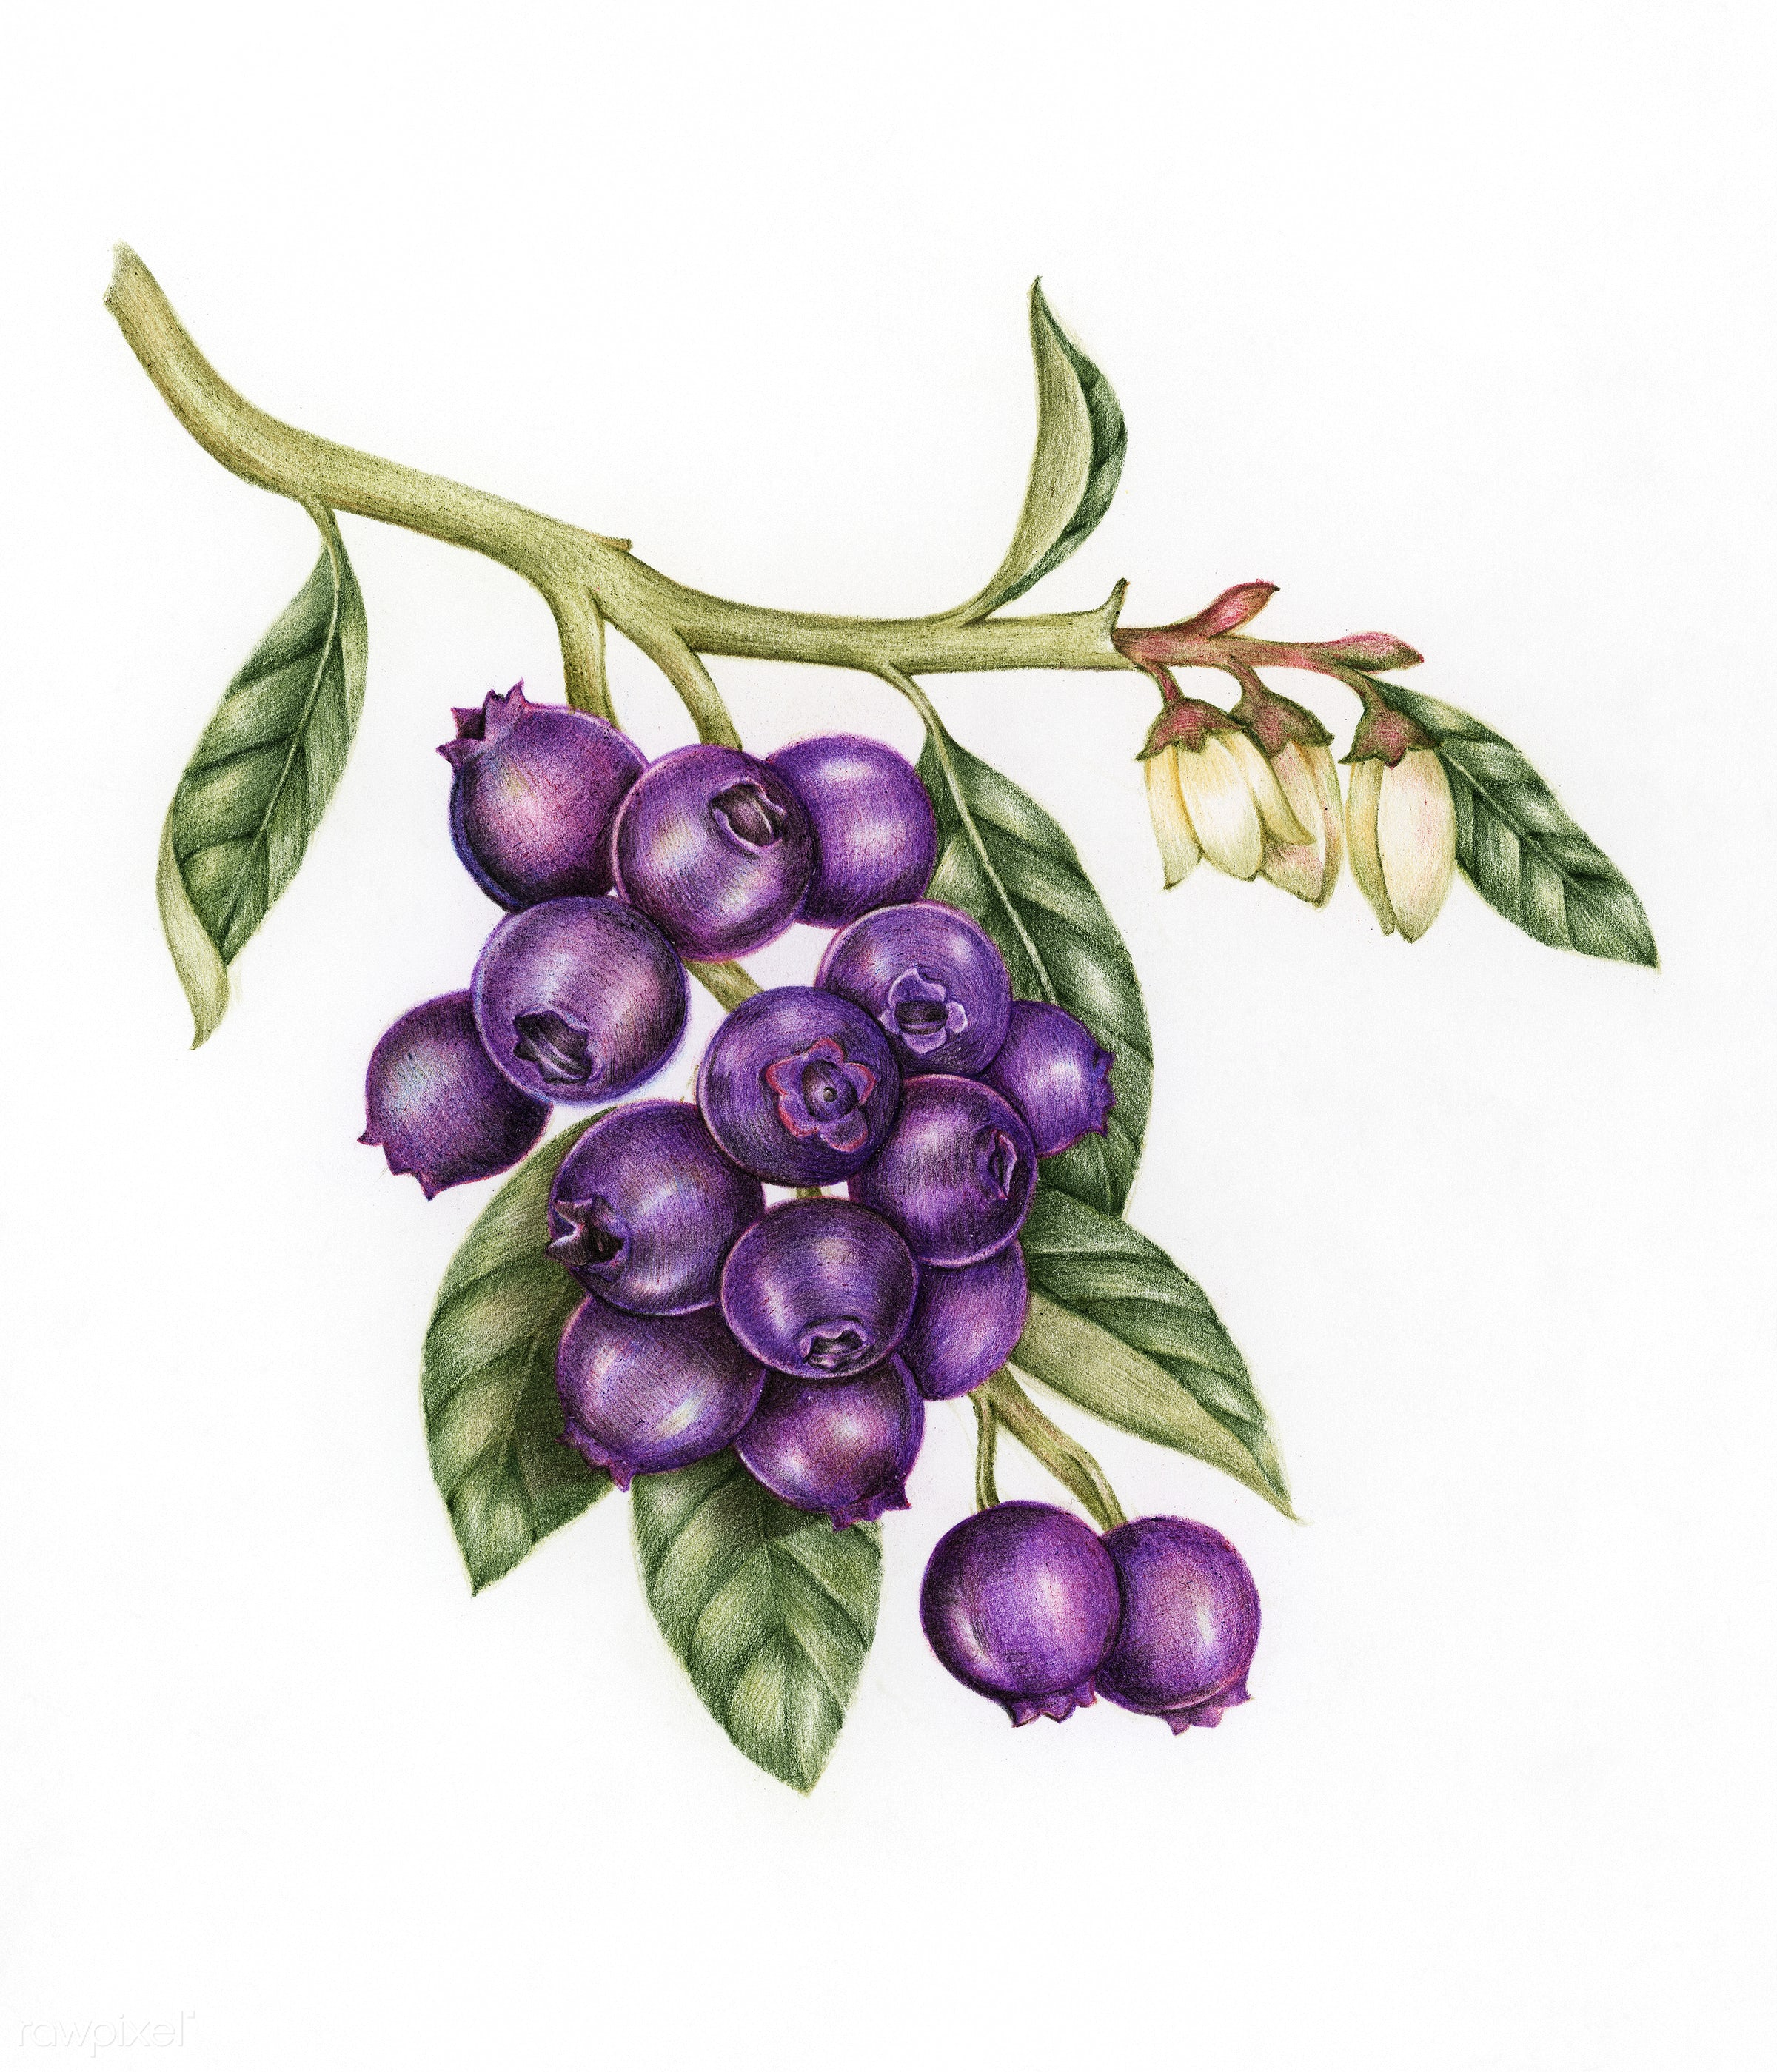 Blueberry clipart sketch. Illustration drawing style of